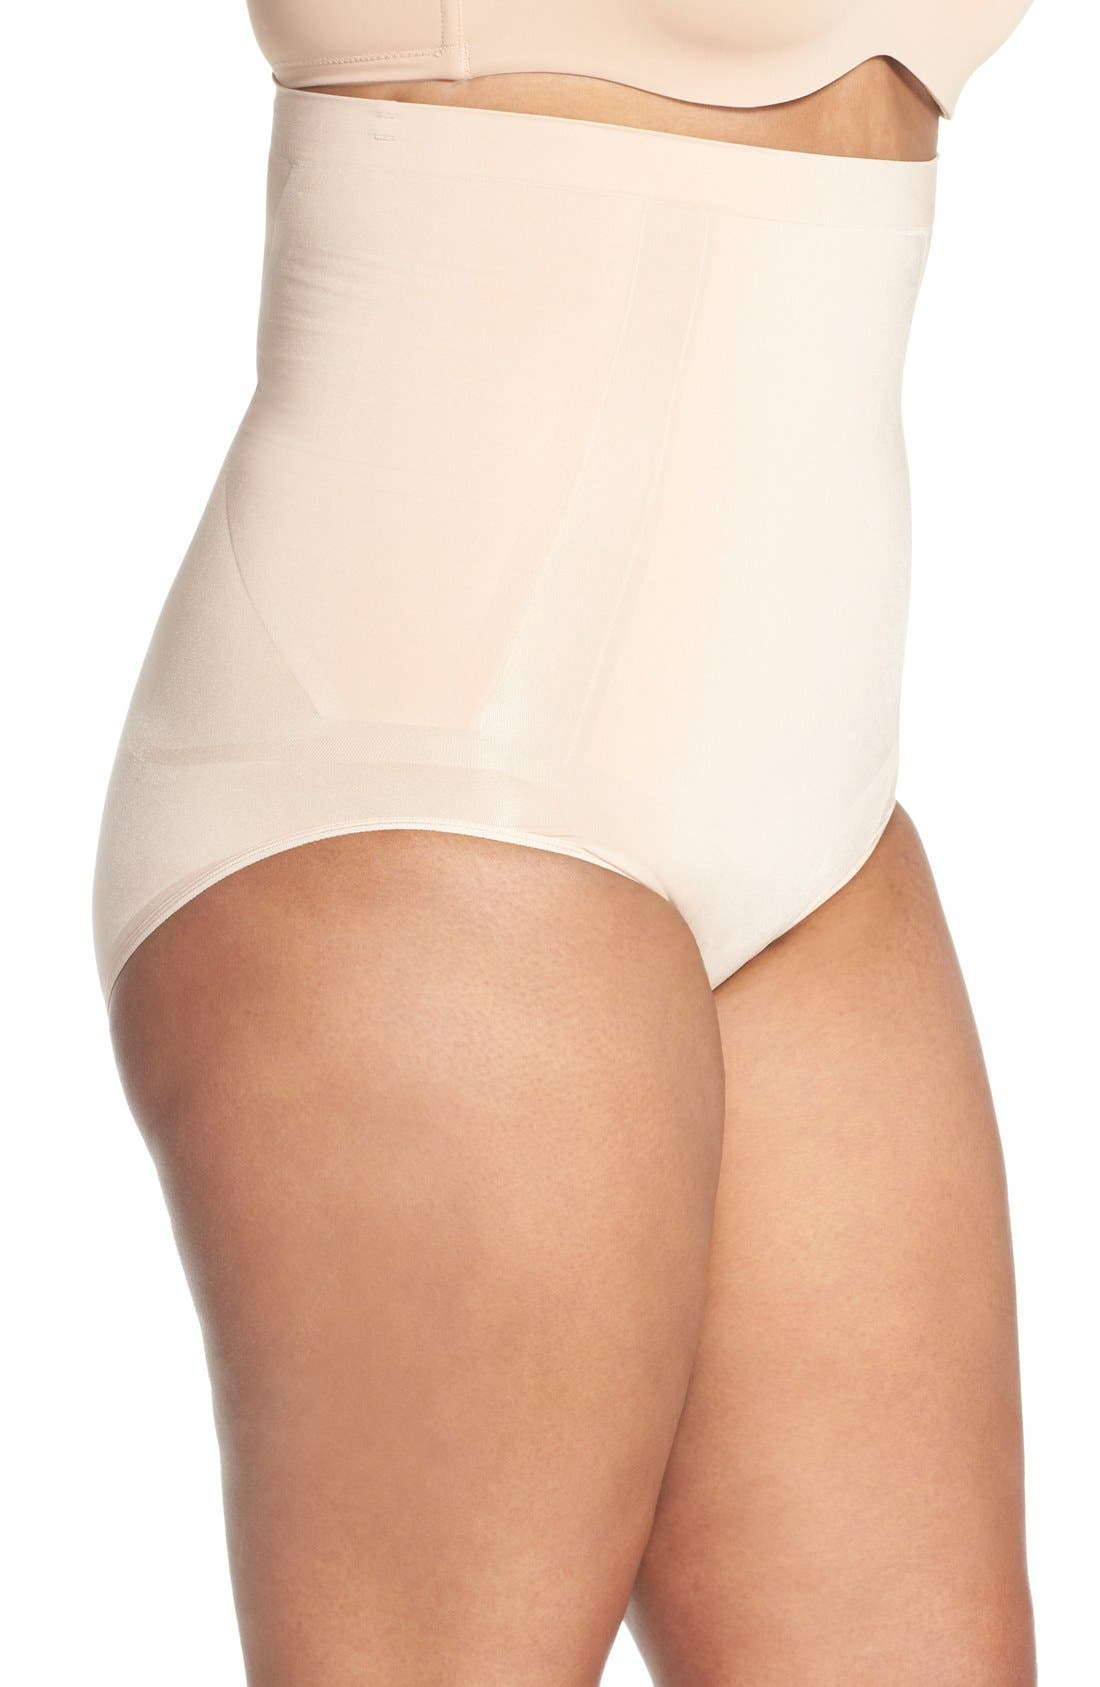 OnCore High Waist Briefs,                             Alternate thumbnail 3, color,                             Soft Nude